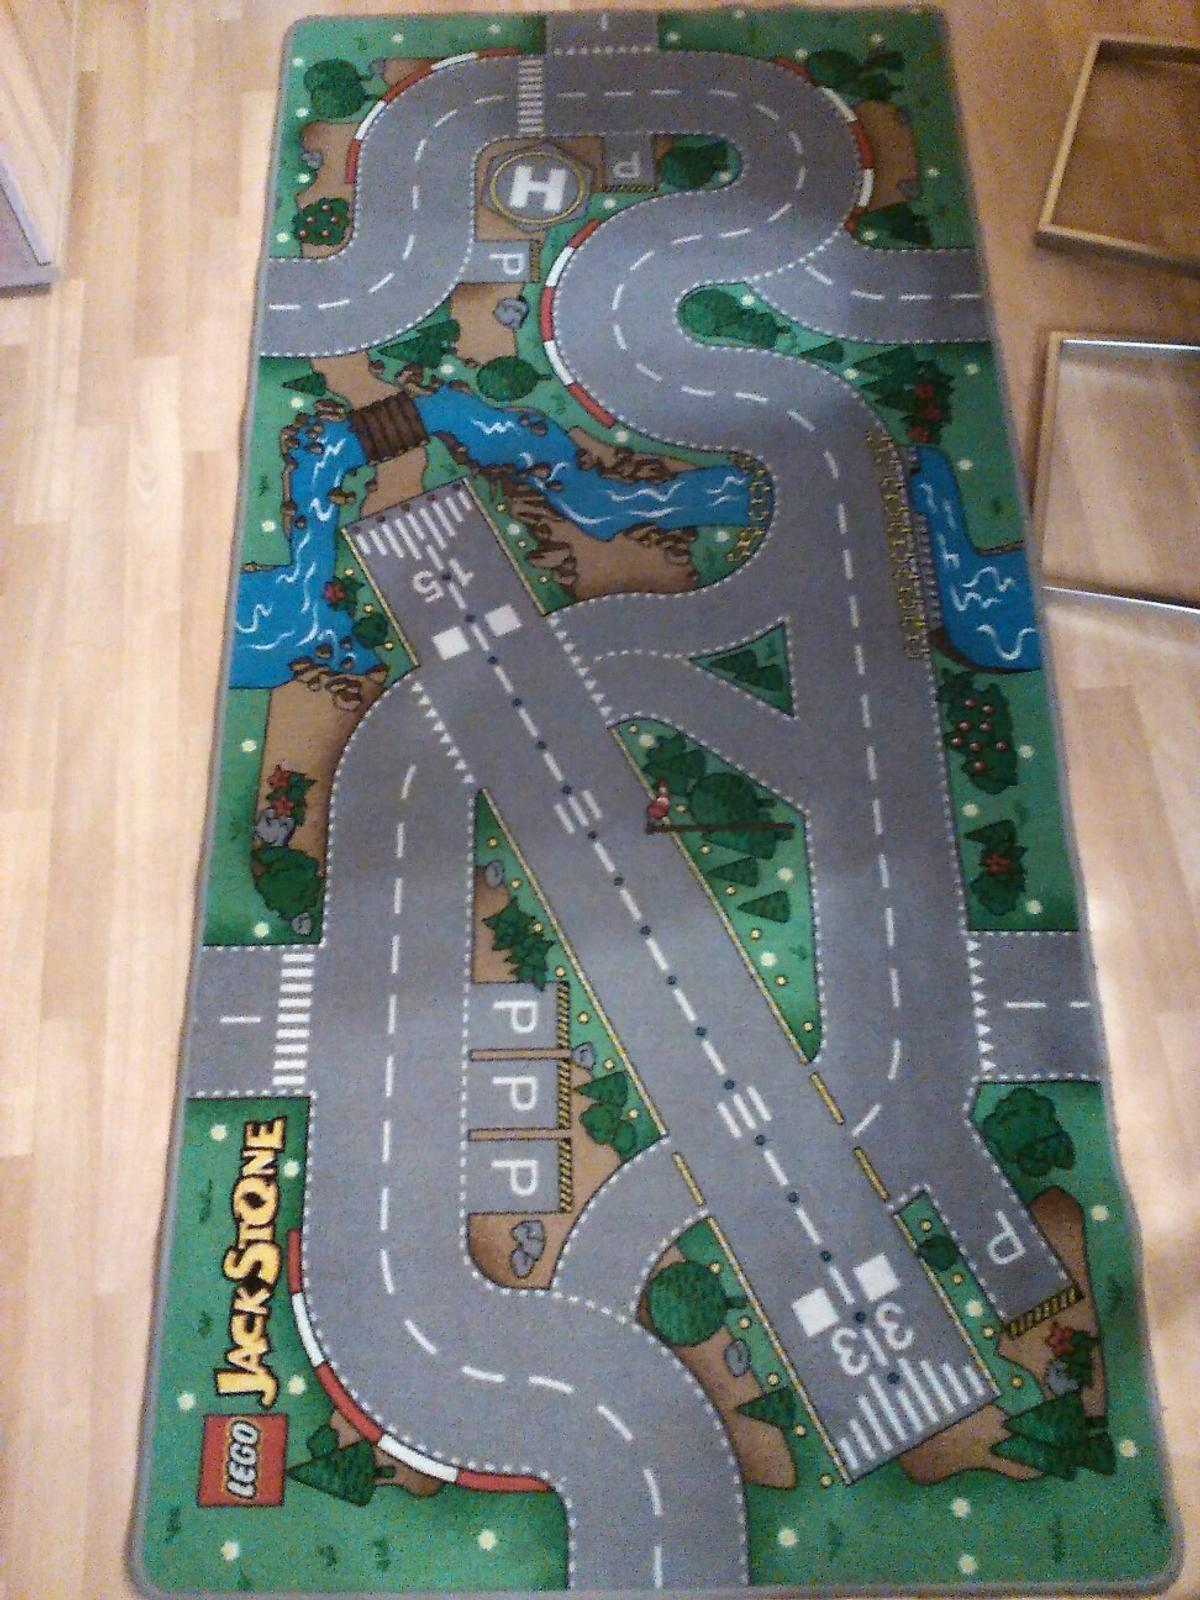 Lego Auto Spielteppich In 01219 Dresden For 1000 For Sale Shpock